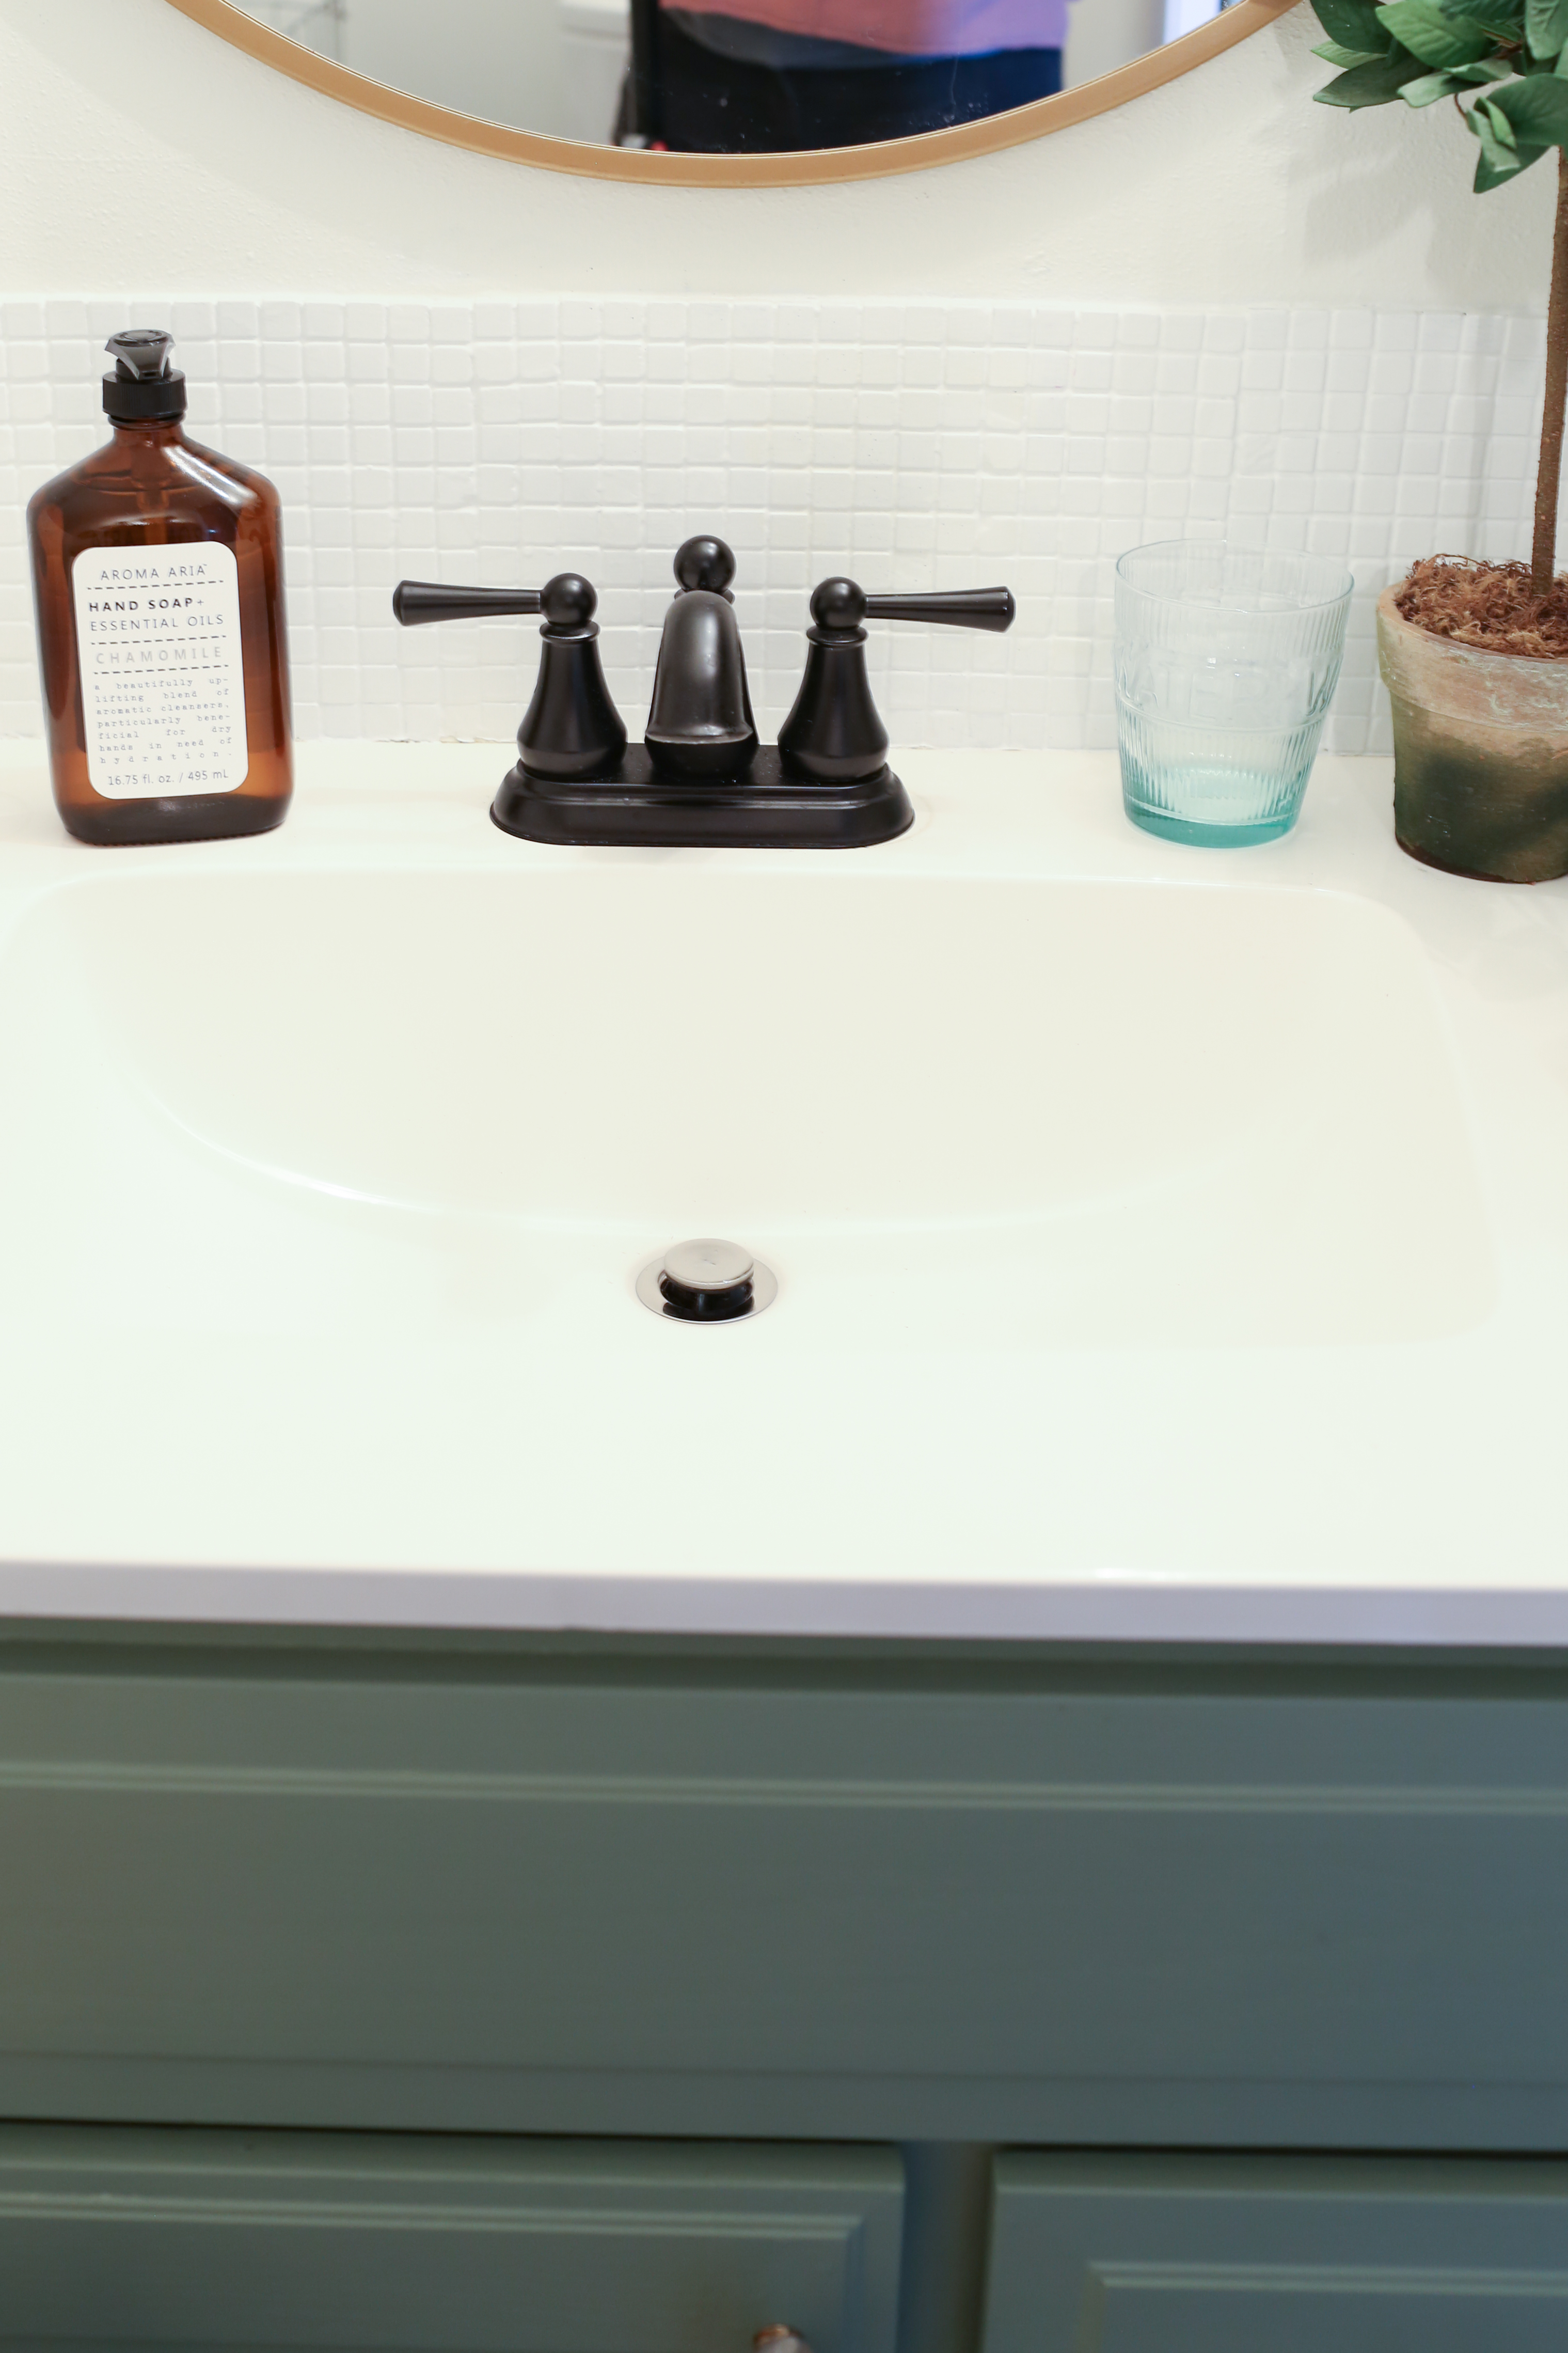 The glass tile backsplash is painted a matte white to give the bathroom a clean farmhouse feel.